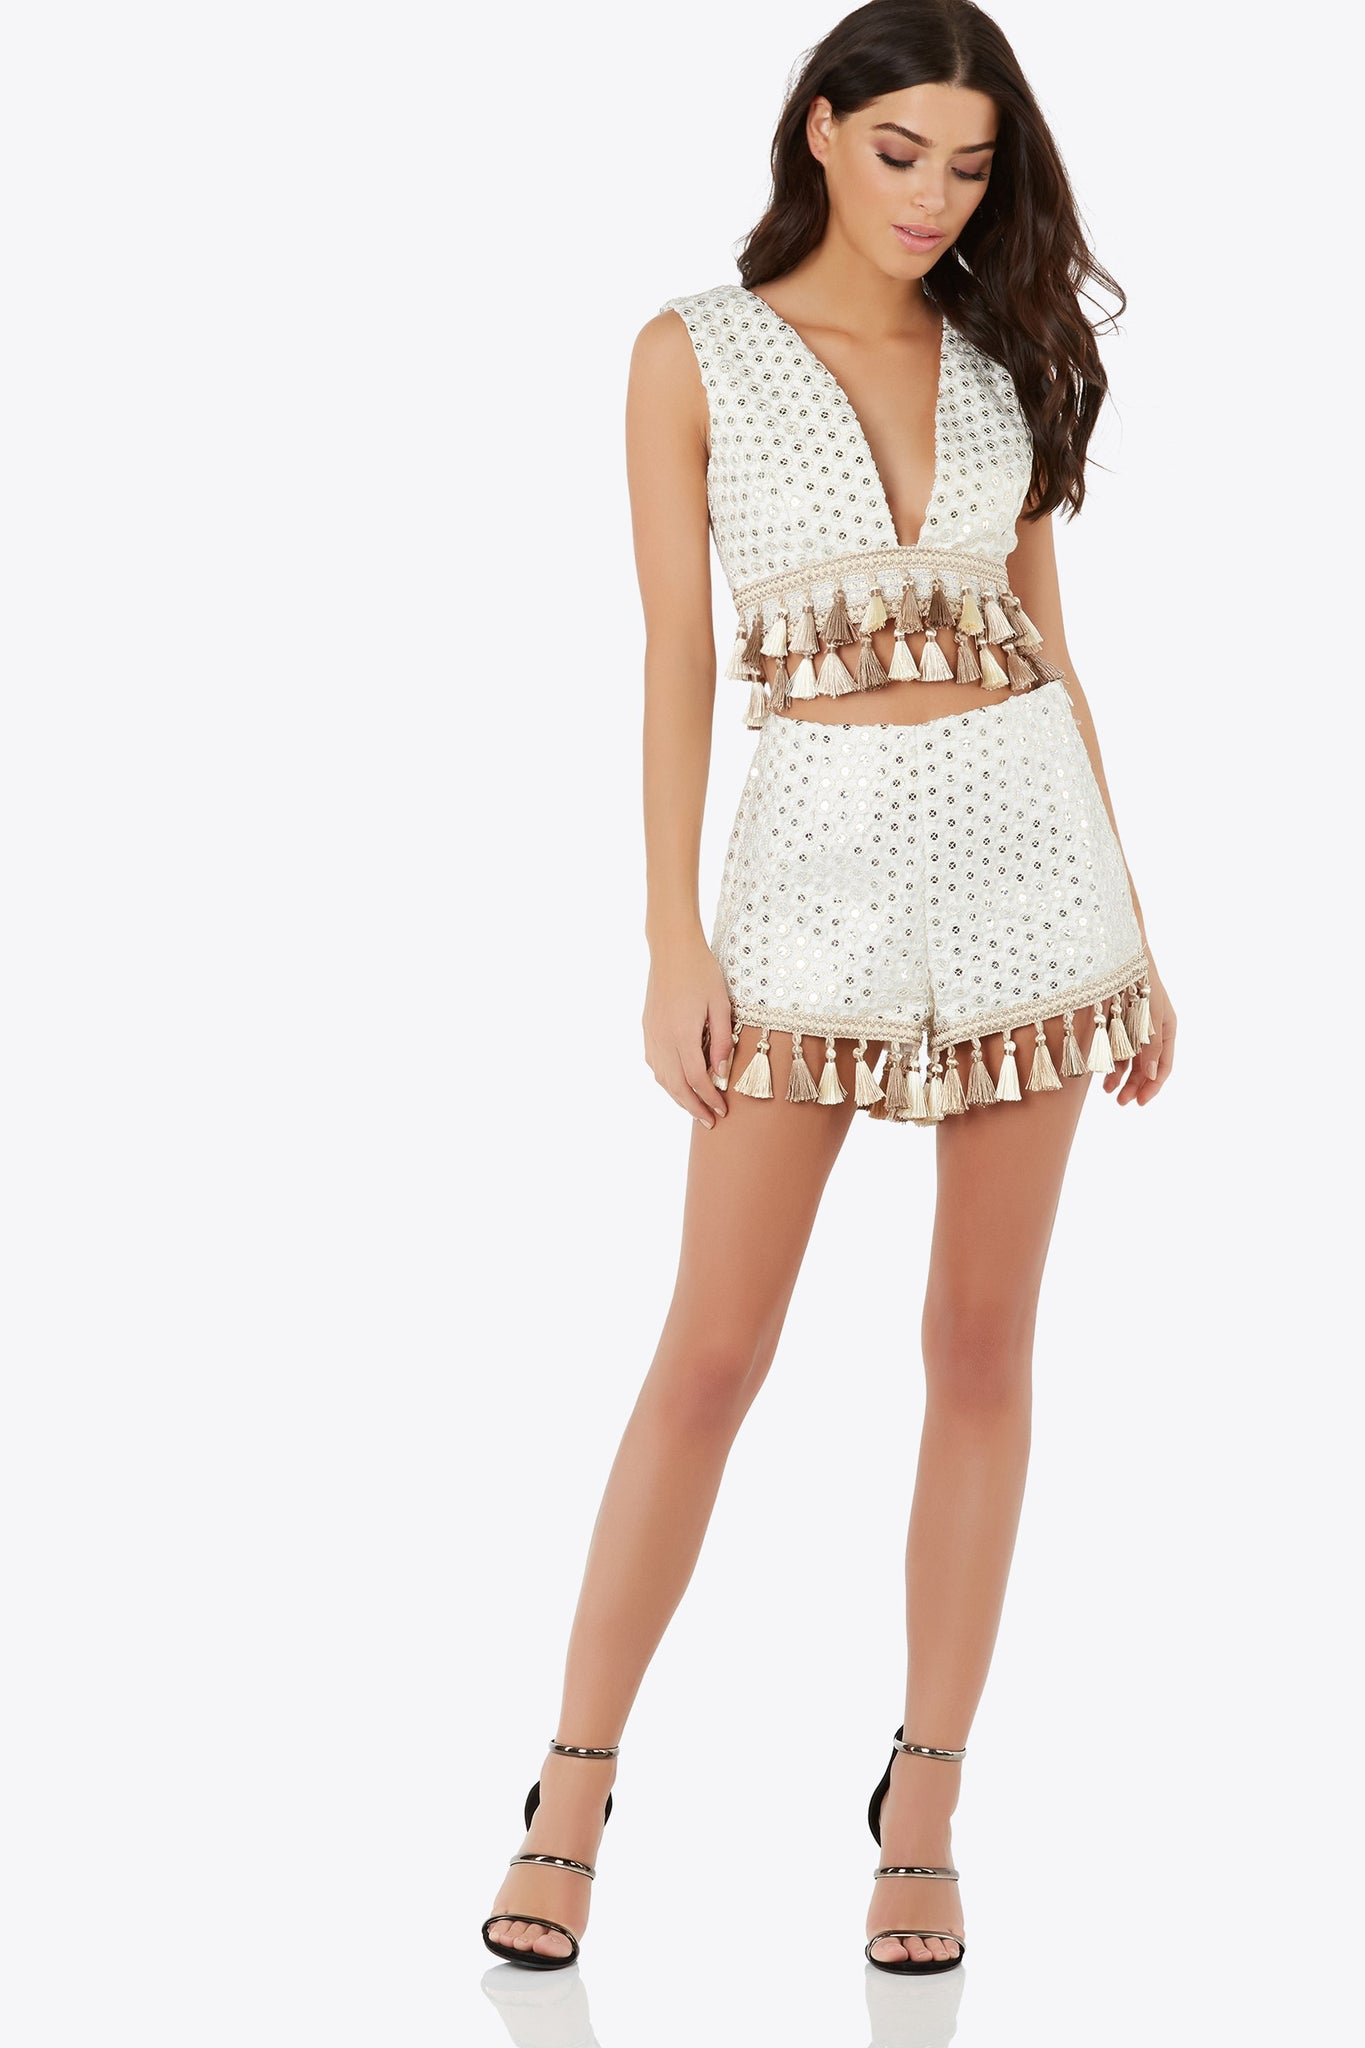 Slay the day in this embellished short with tassel accents. Fully lined with hidden side zipper.